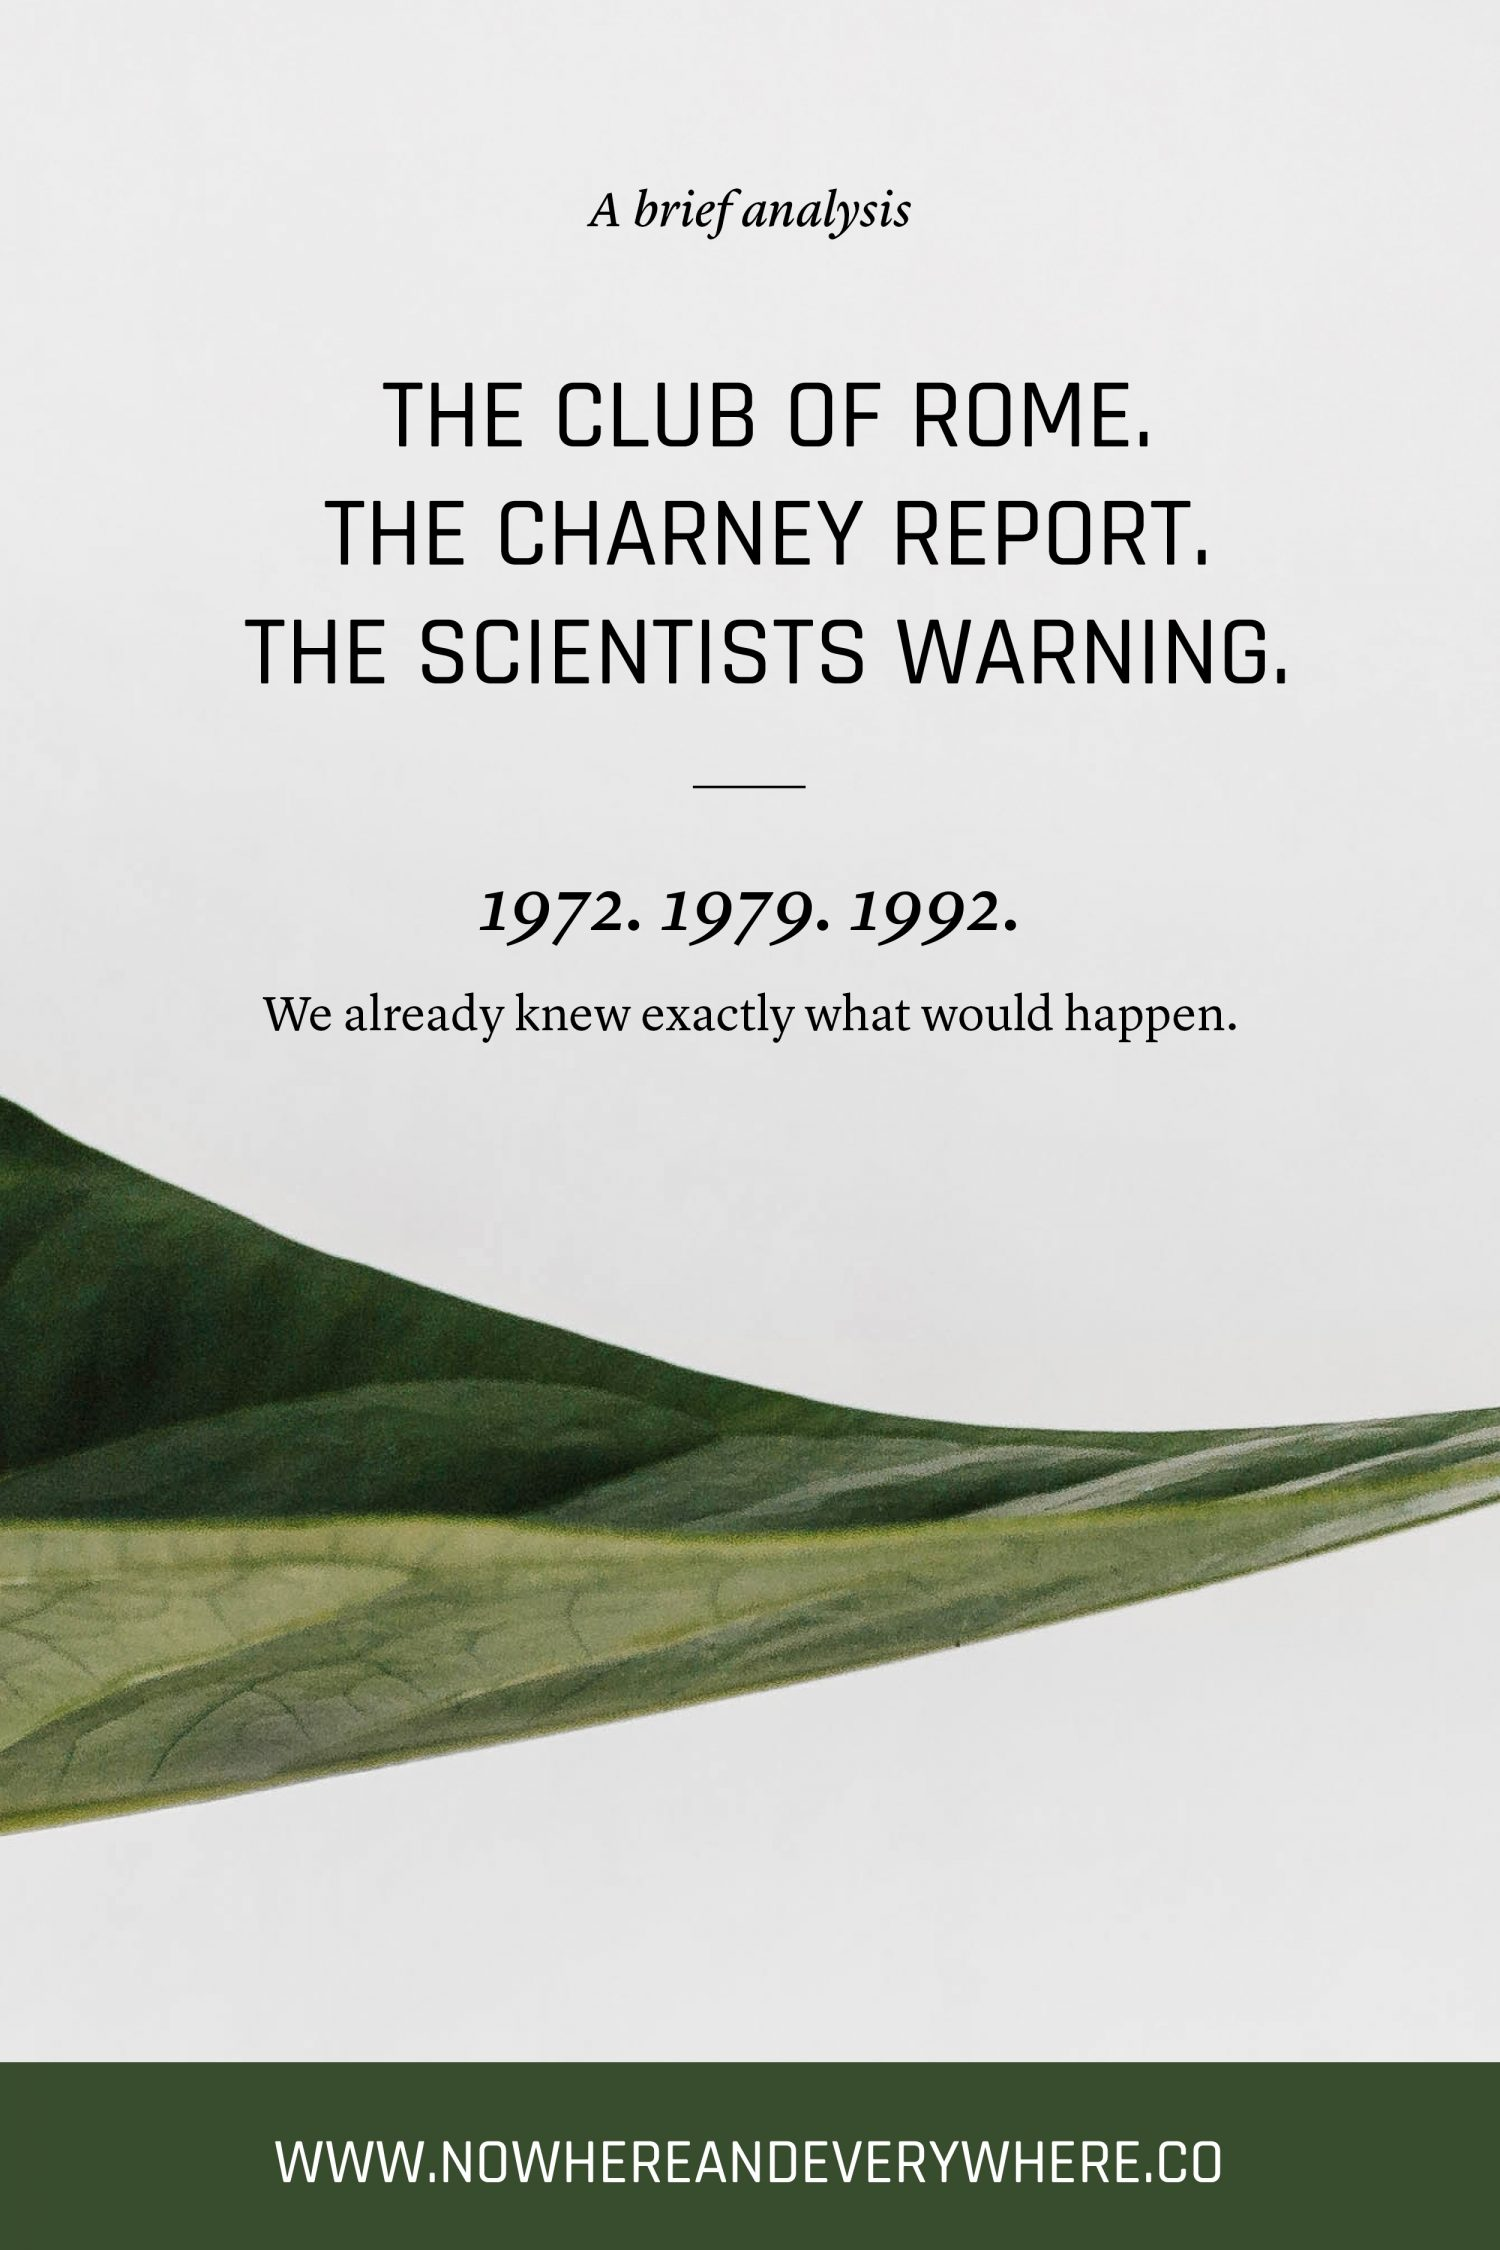 The Club of Rome Report in the 21st century Nowhere & Everywhere Sustainable Travel